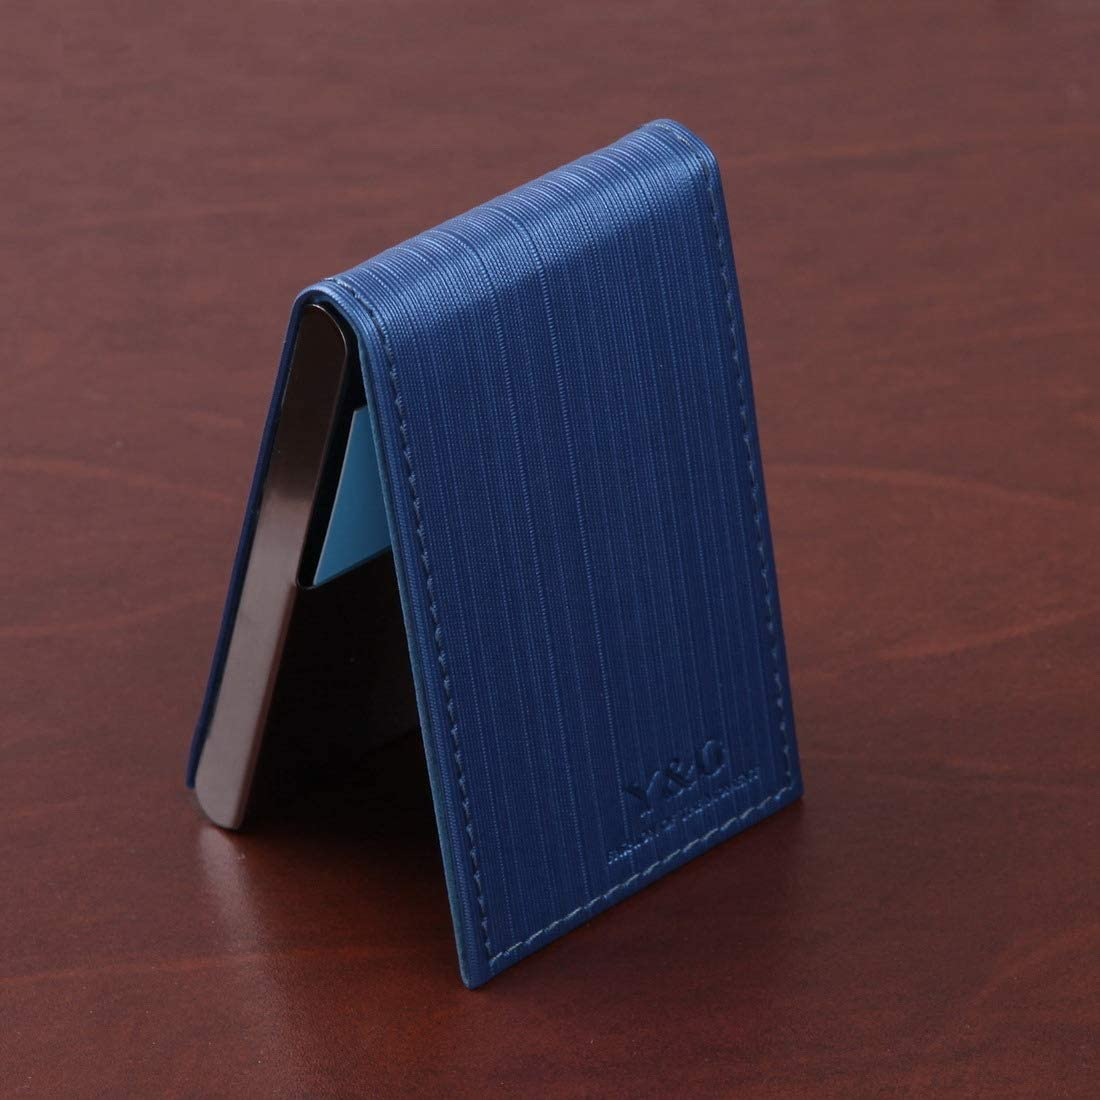 YDC06 Best Card Holder Black Leather Card Case Gifts For Designer By Y/&G